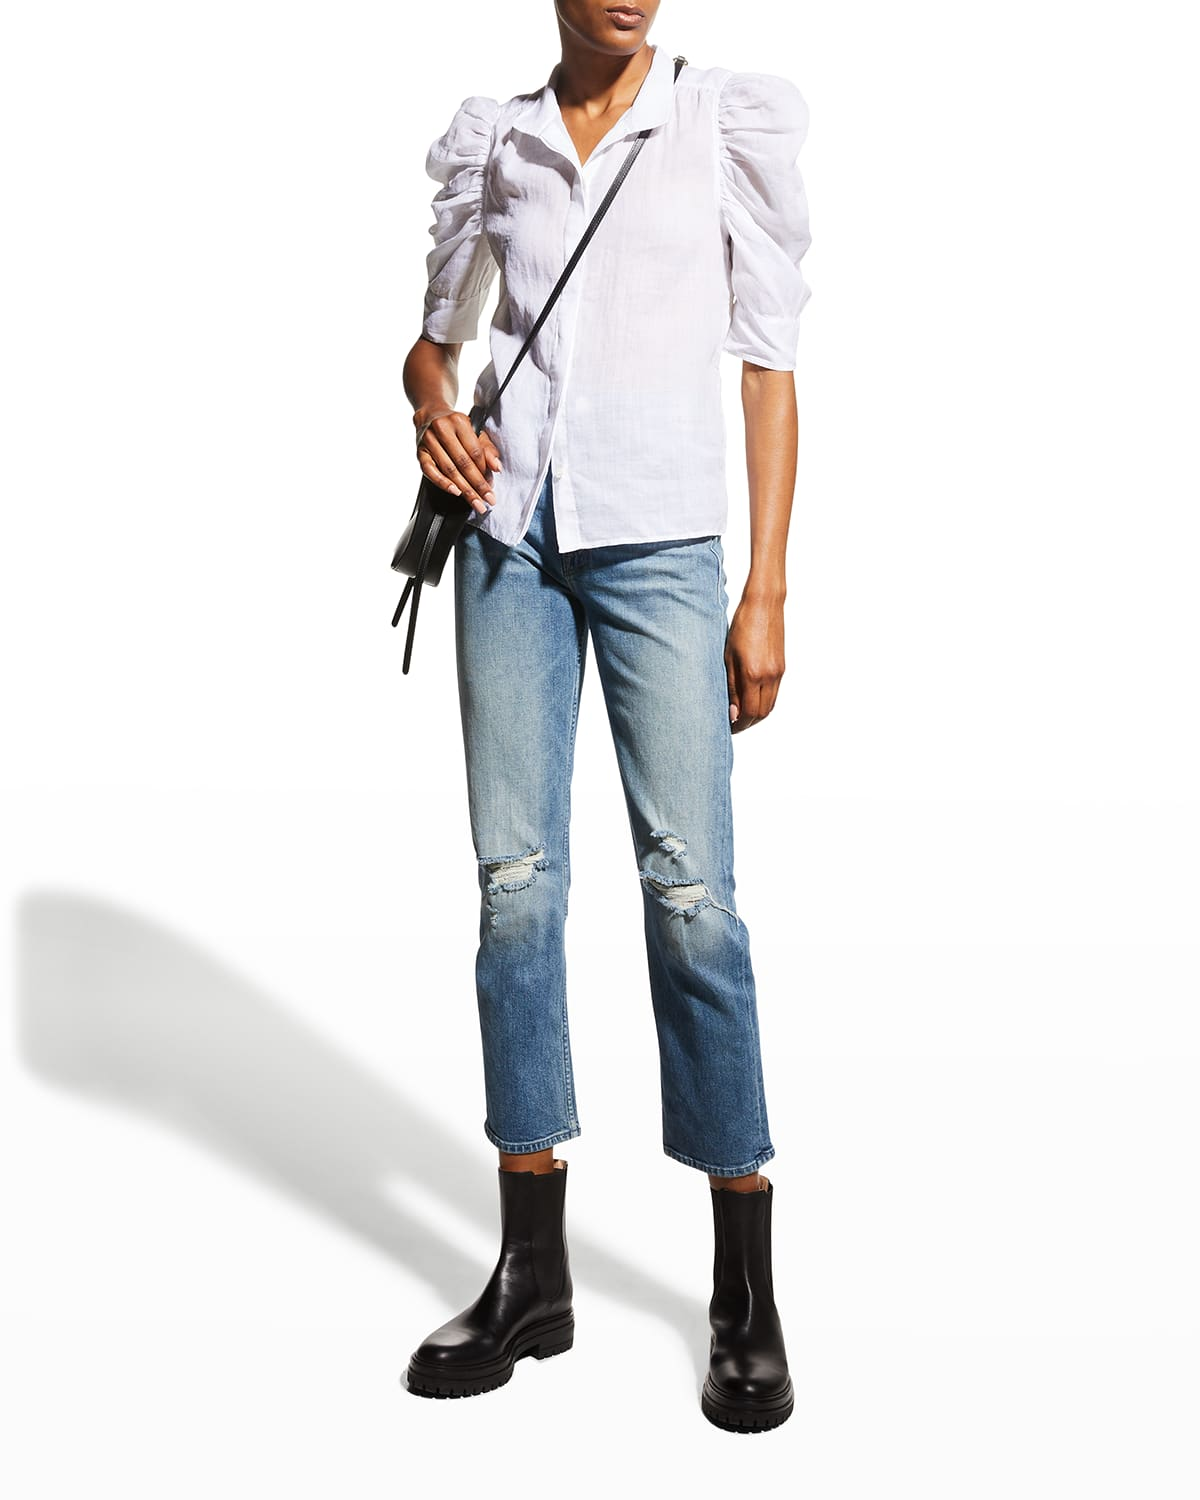 The High-Waisted Rider Ankle Jeans